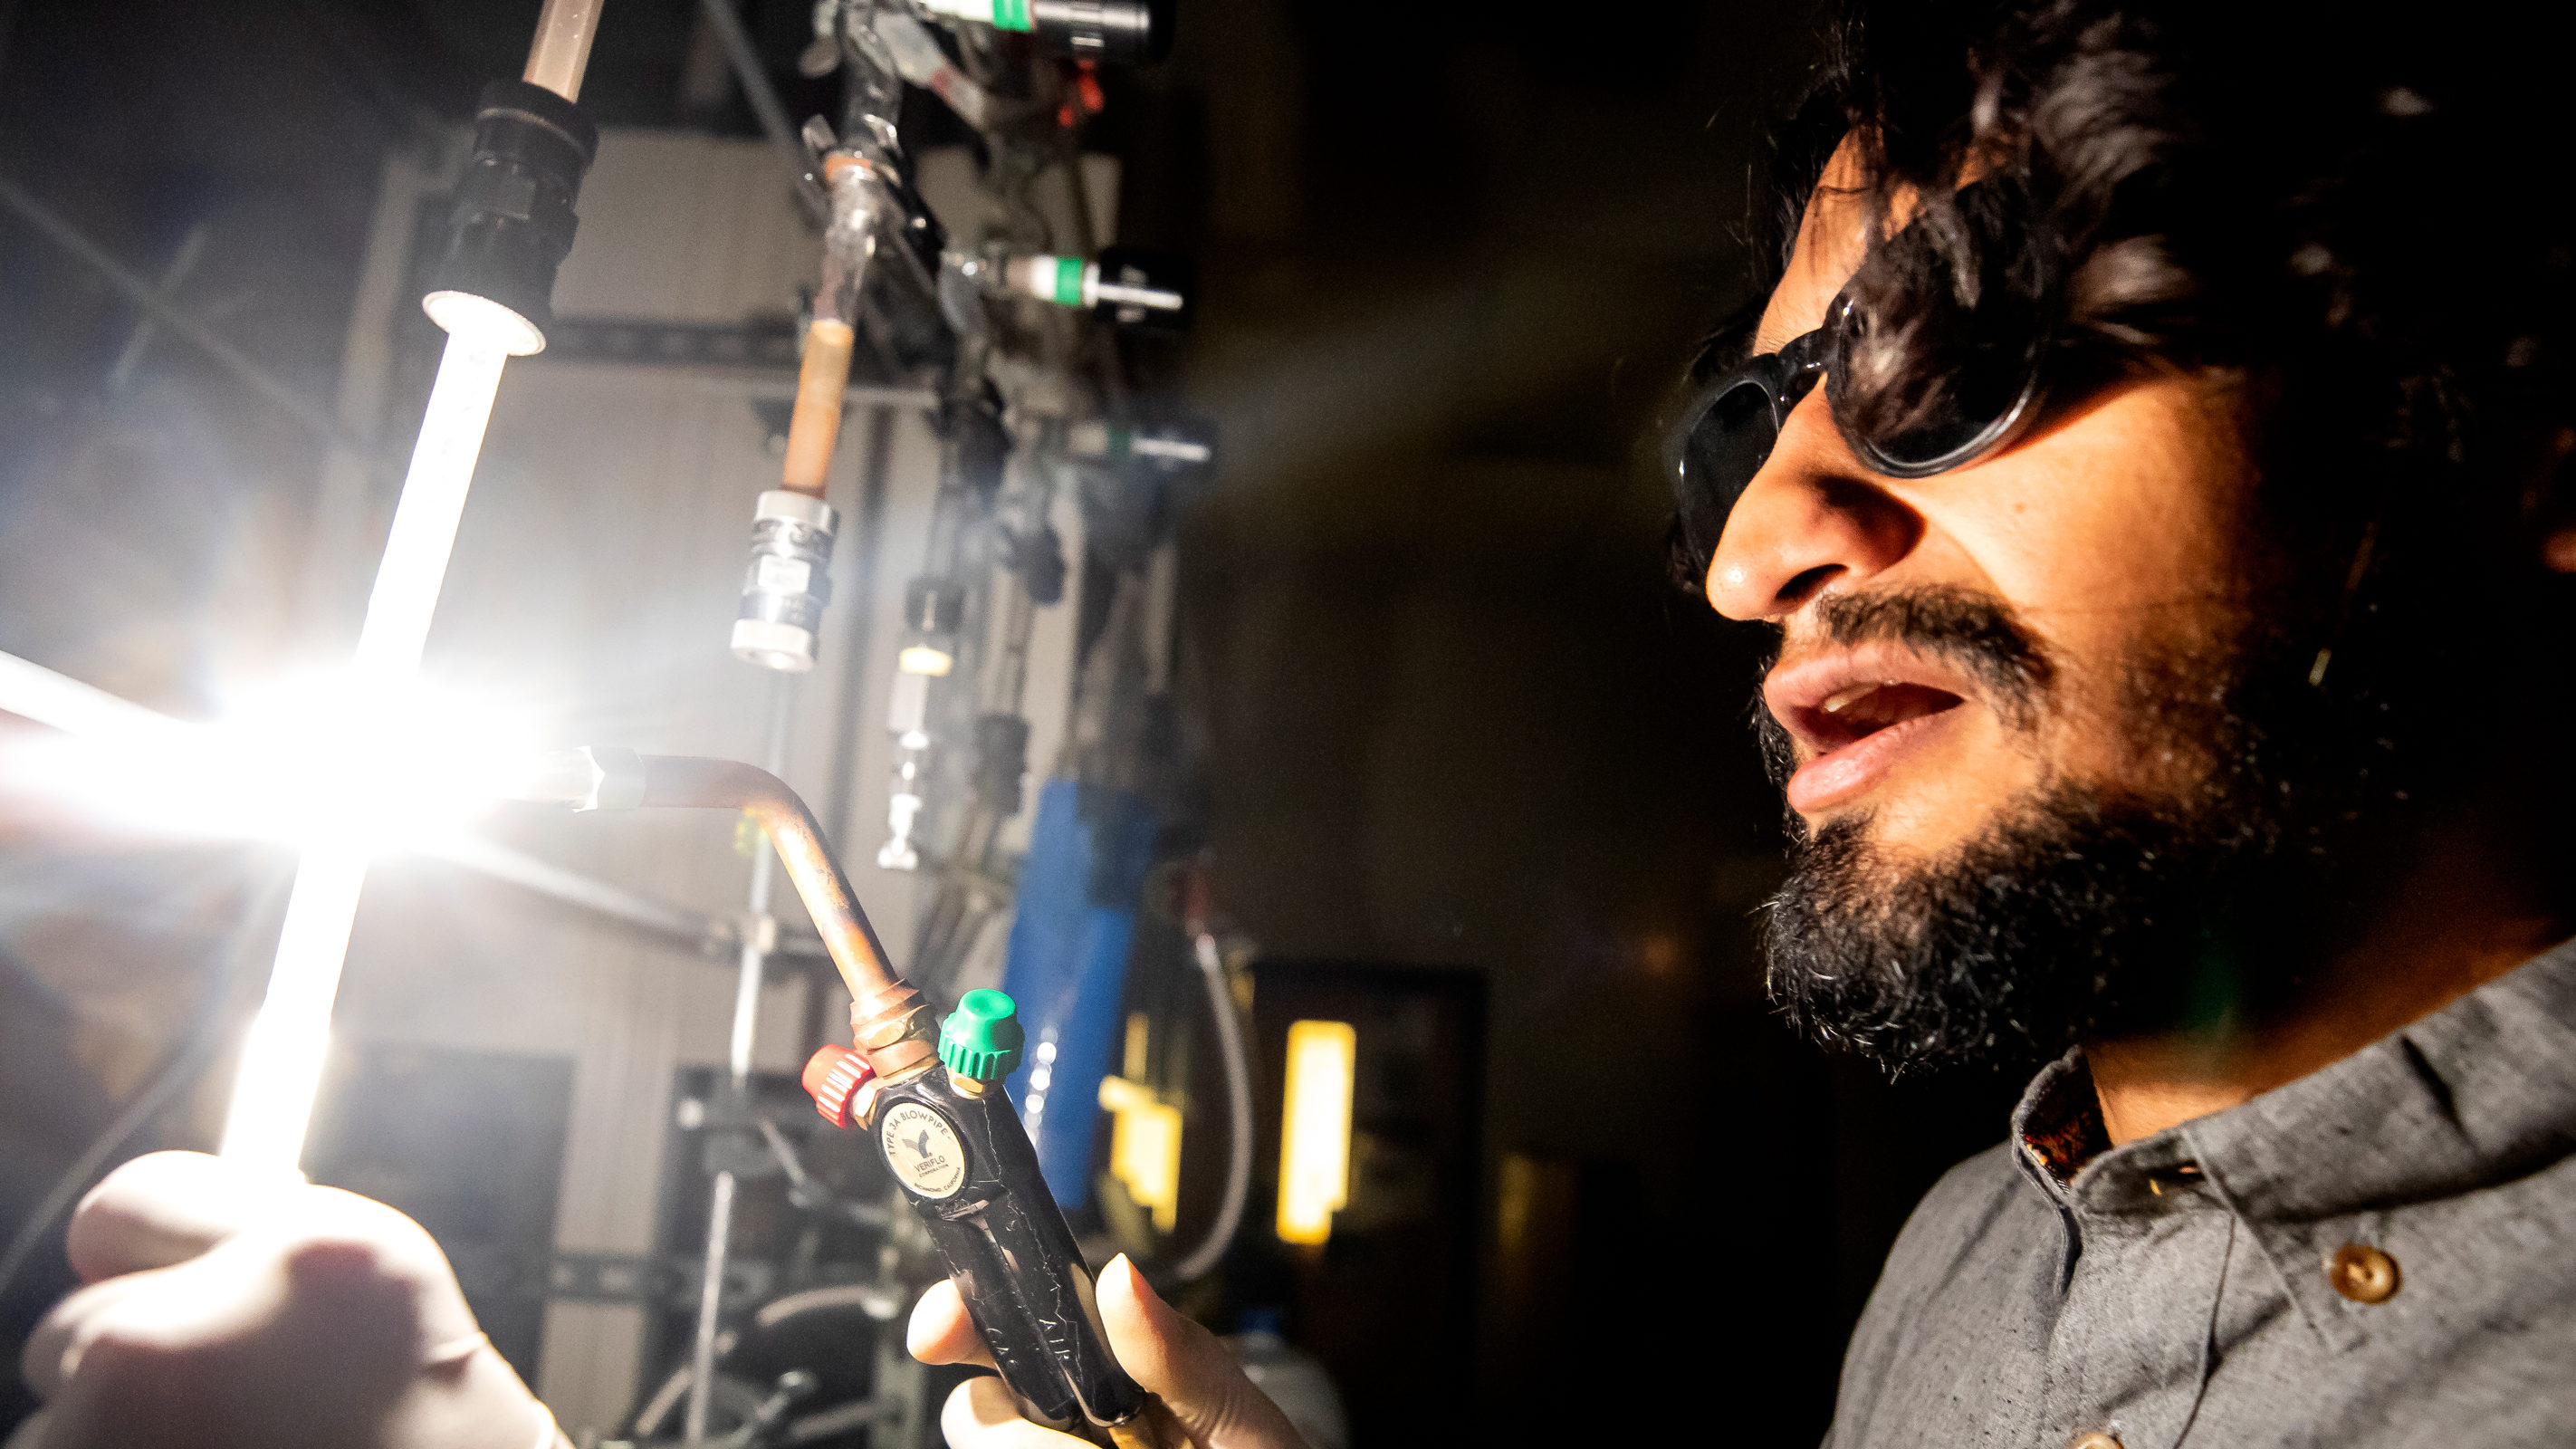 Juan Lopez wears sunglasses to protect his eyes in the lab